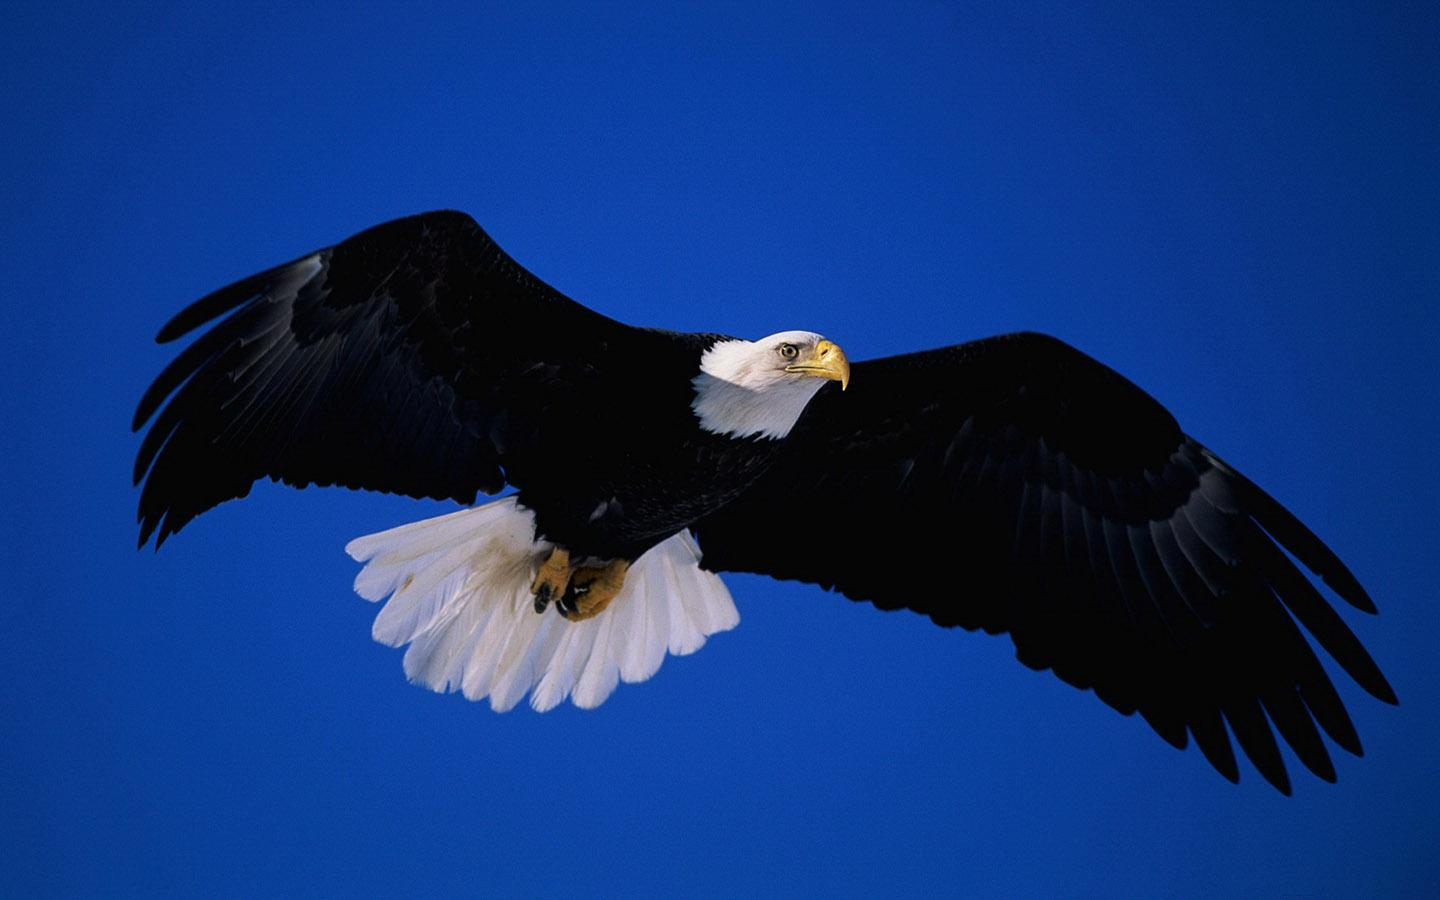 Eagle HD Wallpaper - Android Apps on Google Play